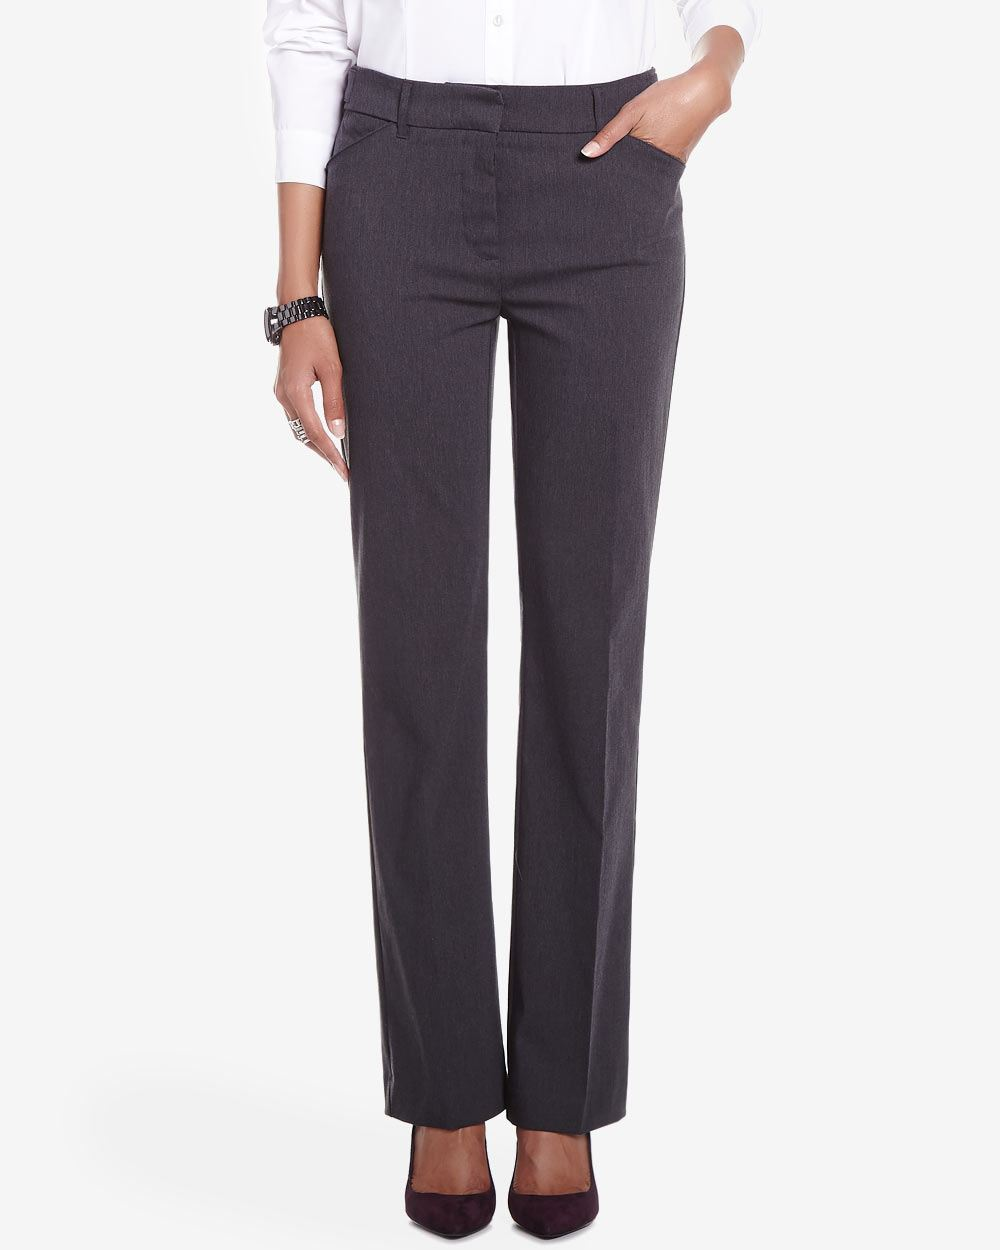 Cavender's pants for men include favorite western jeans from Wrangler and Rock 47 in styles that range from the modern straight leg to the classic boot cut.